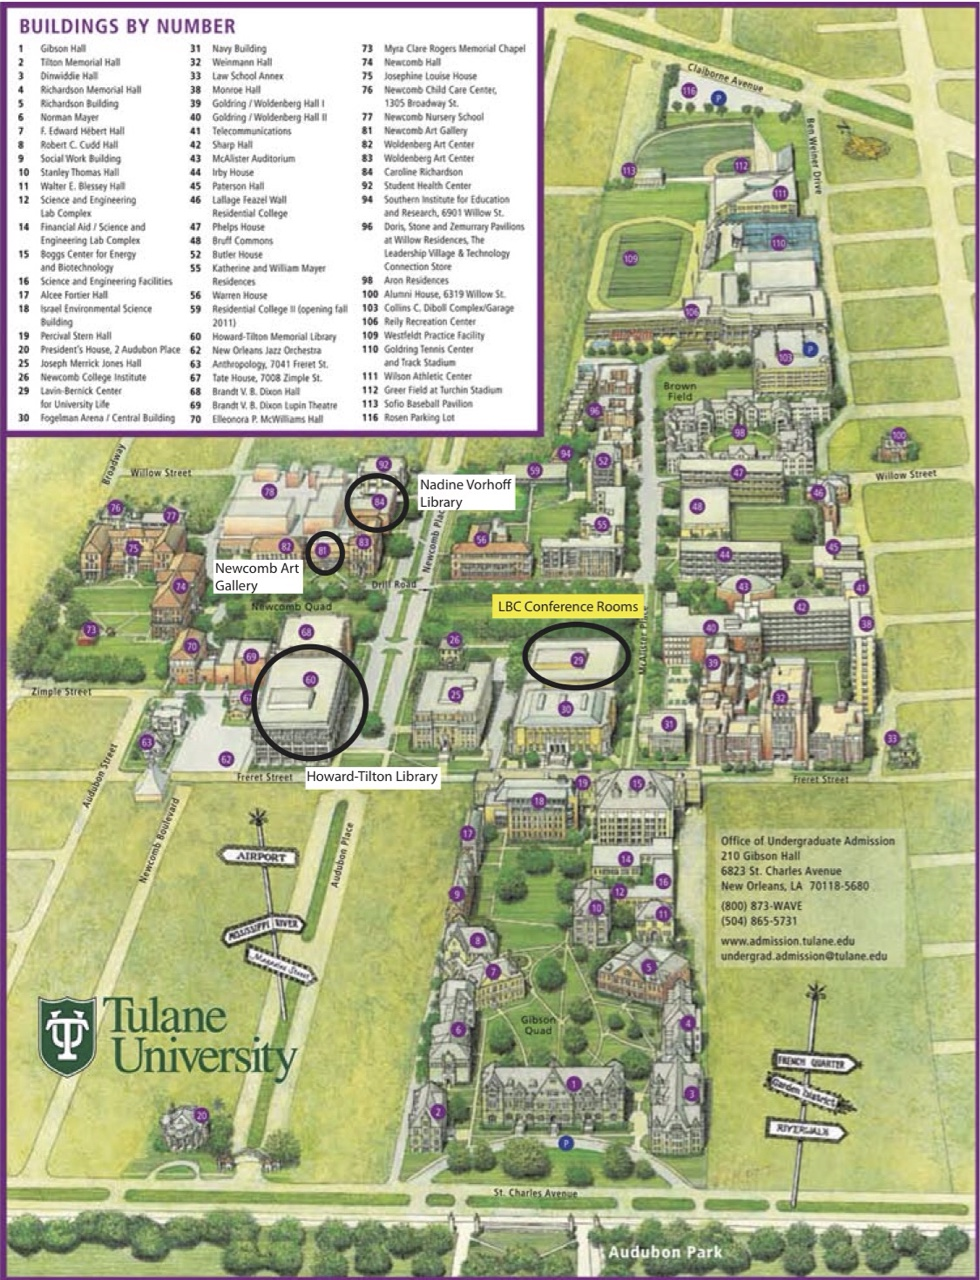 tulane university presented by evelyn melgarejo  thinglink - campus map httpswwwgooglecomsearchqtulaneuniversitycampusampsafeactiveampbiwampbihampsourcelnmsamptbmischampsaxamp